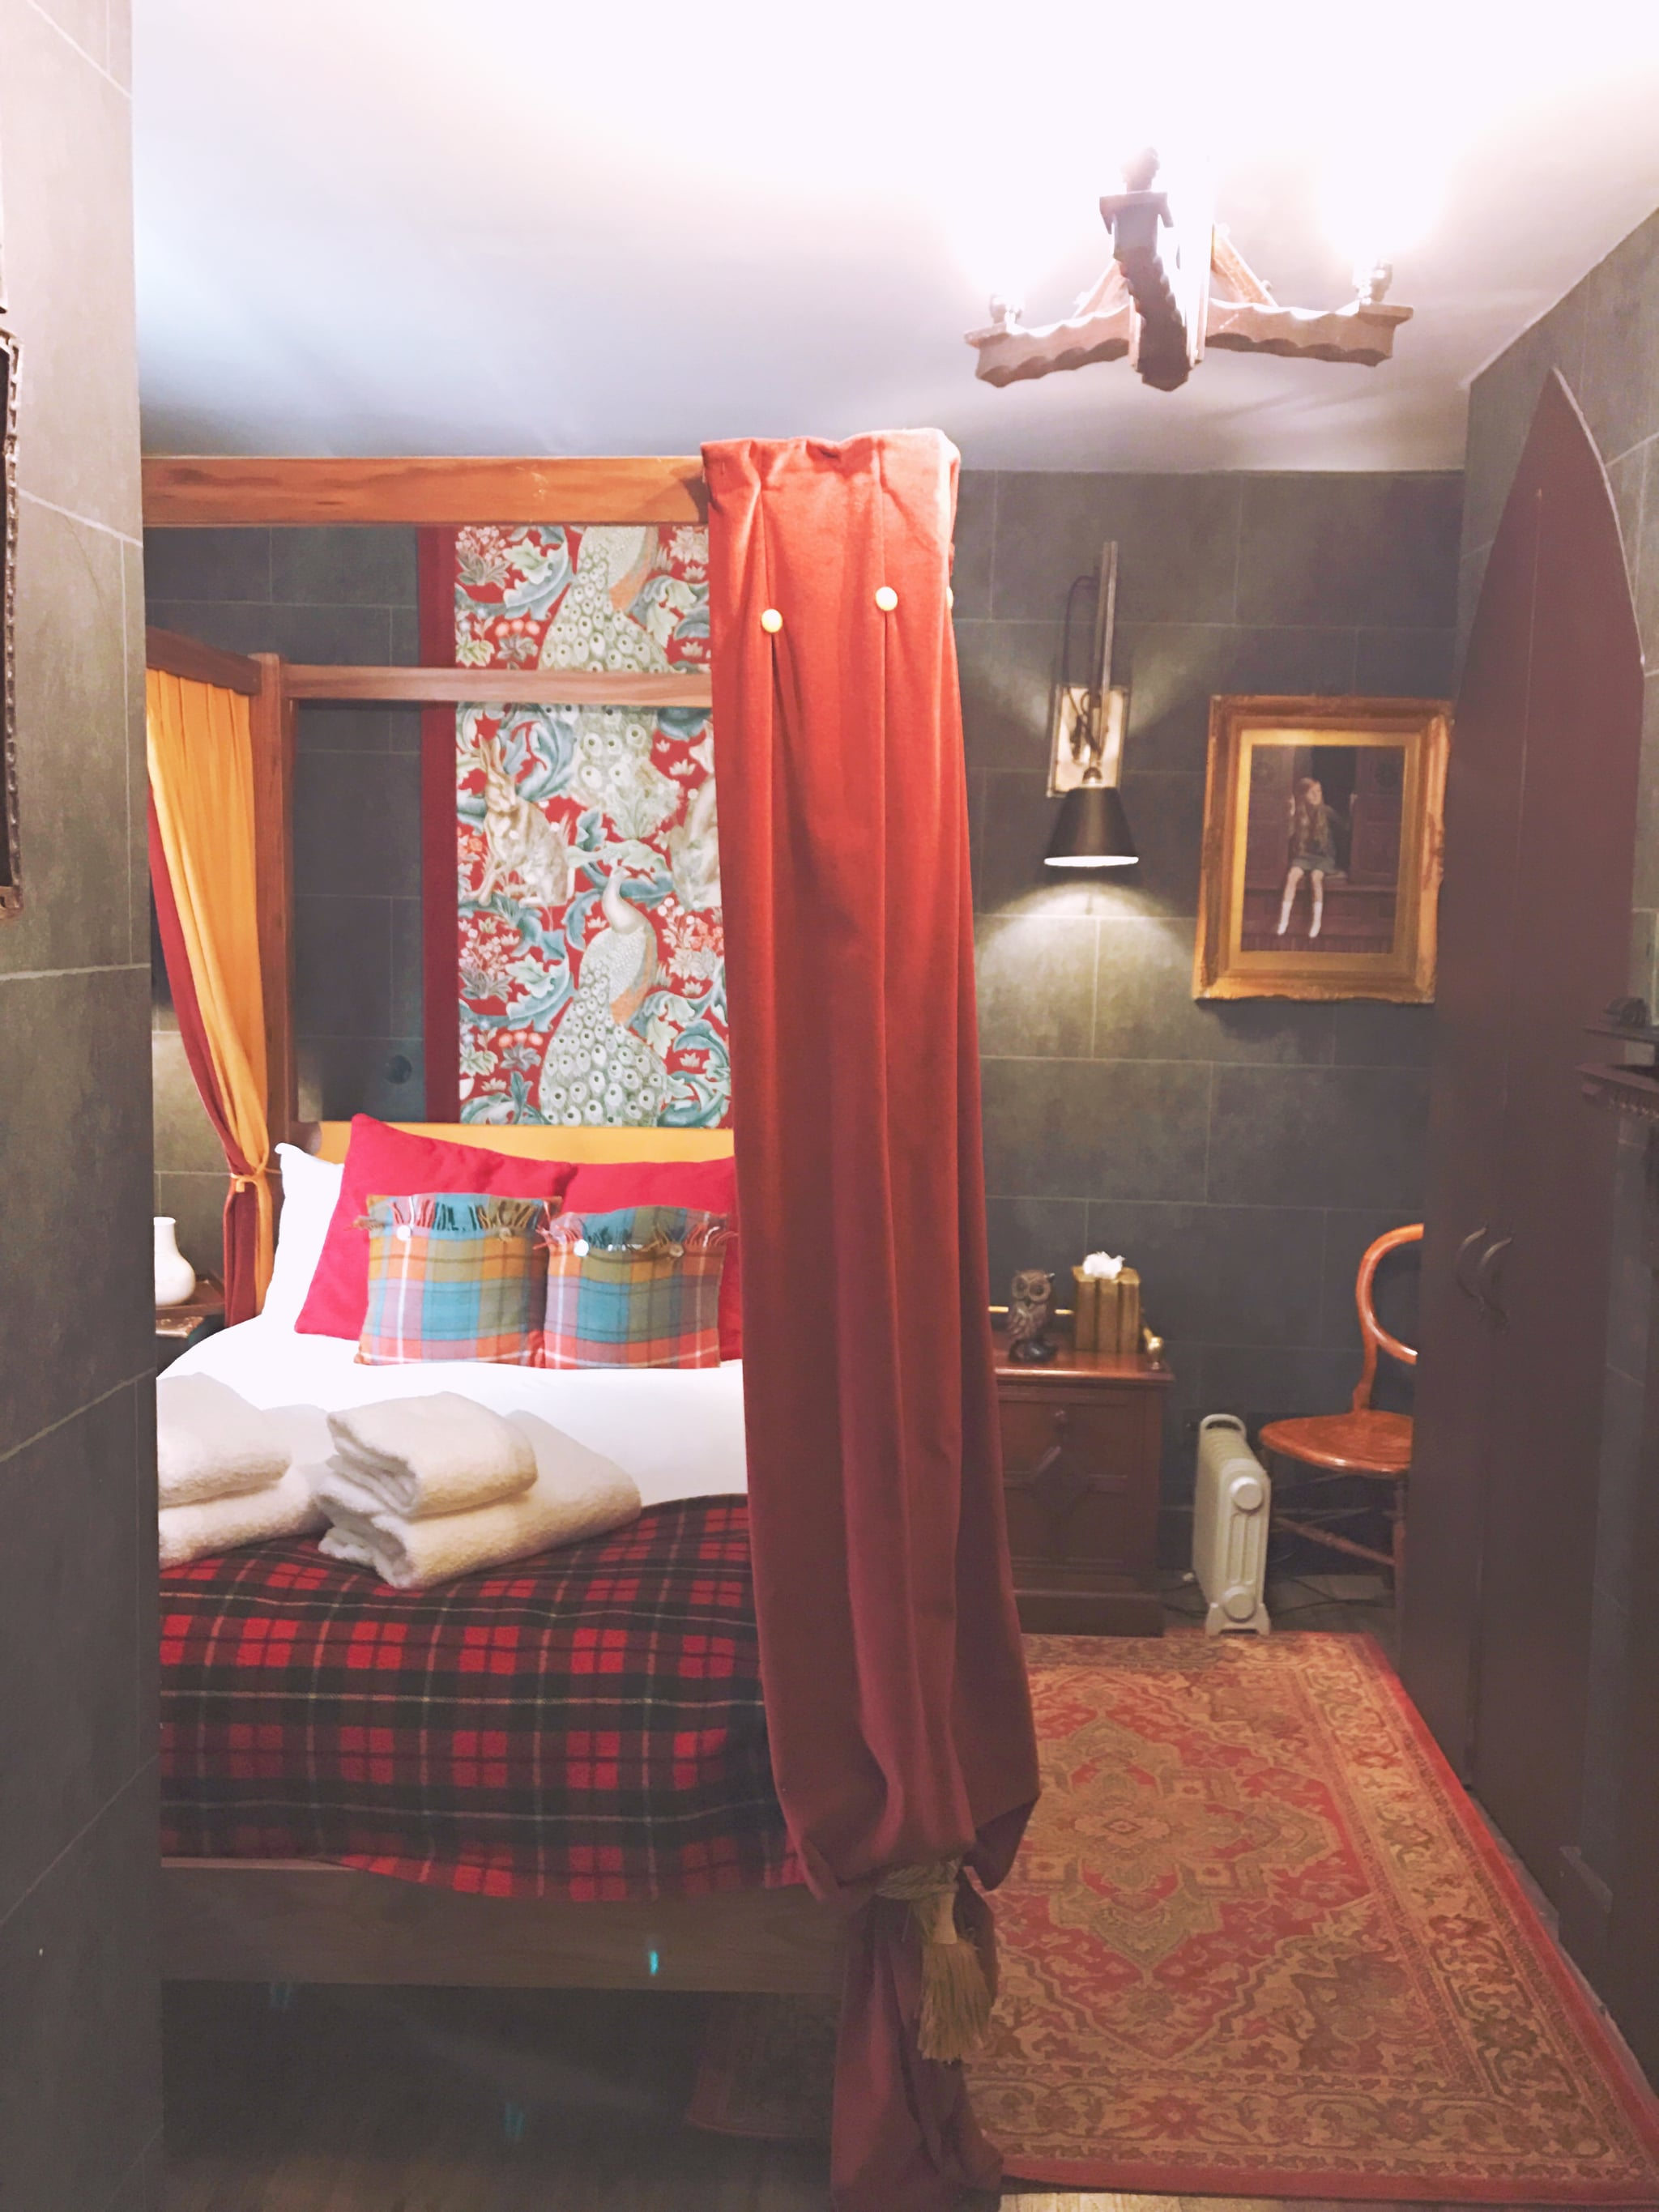 The Room Is Quite Small But It Is Cozy And Cute I Stayed